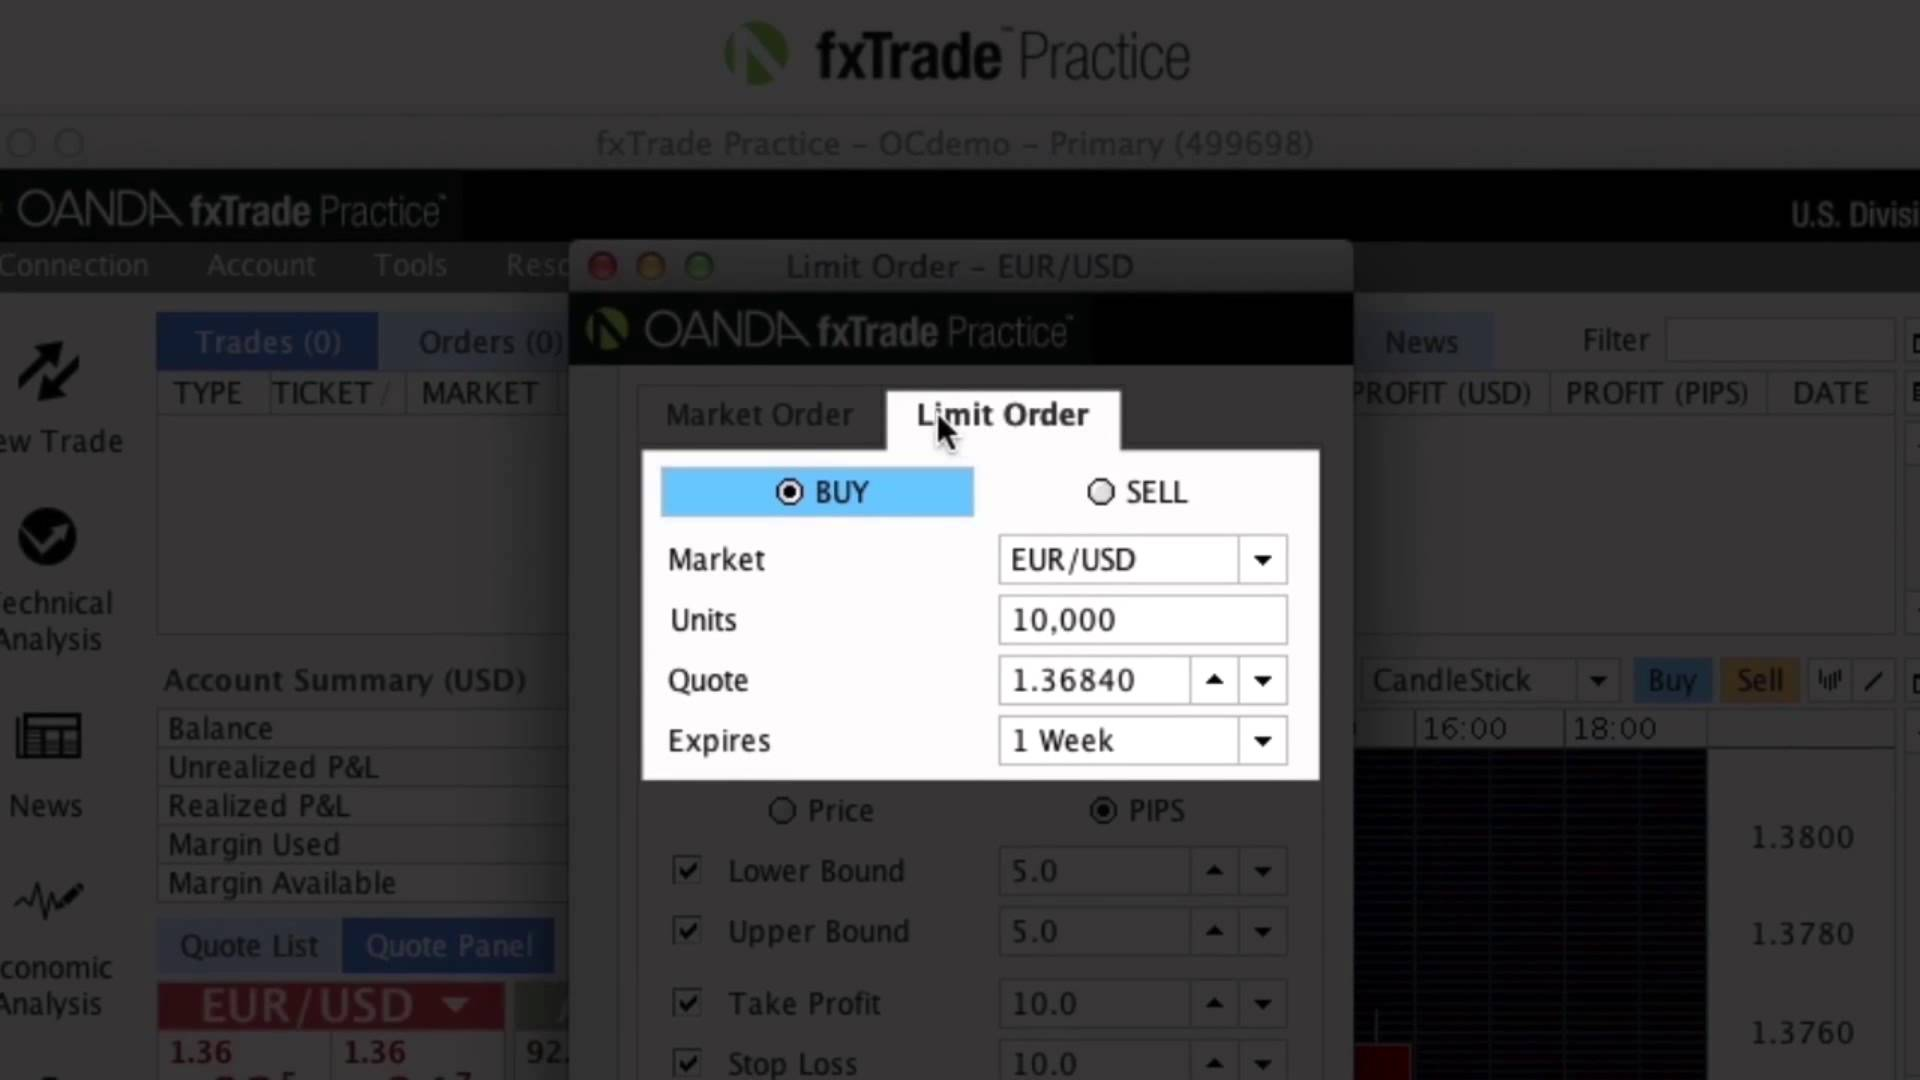 Introduction to OANDA fxTrade